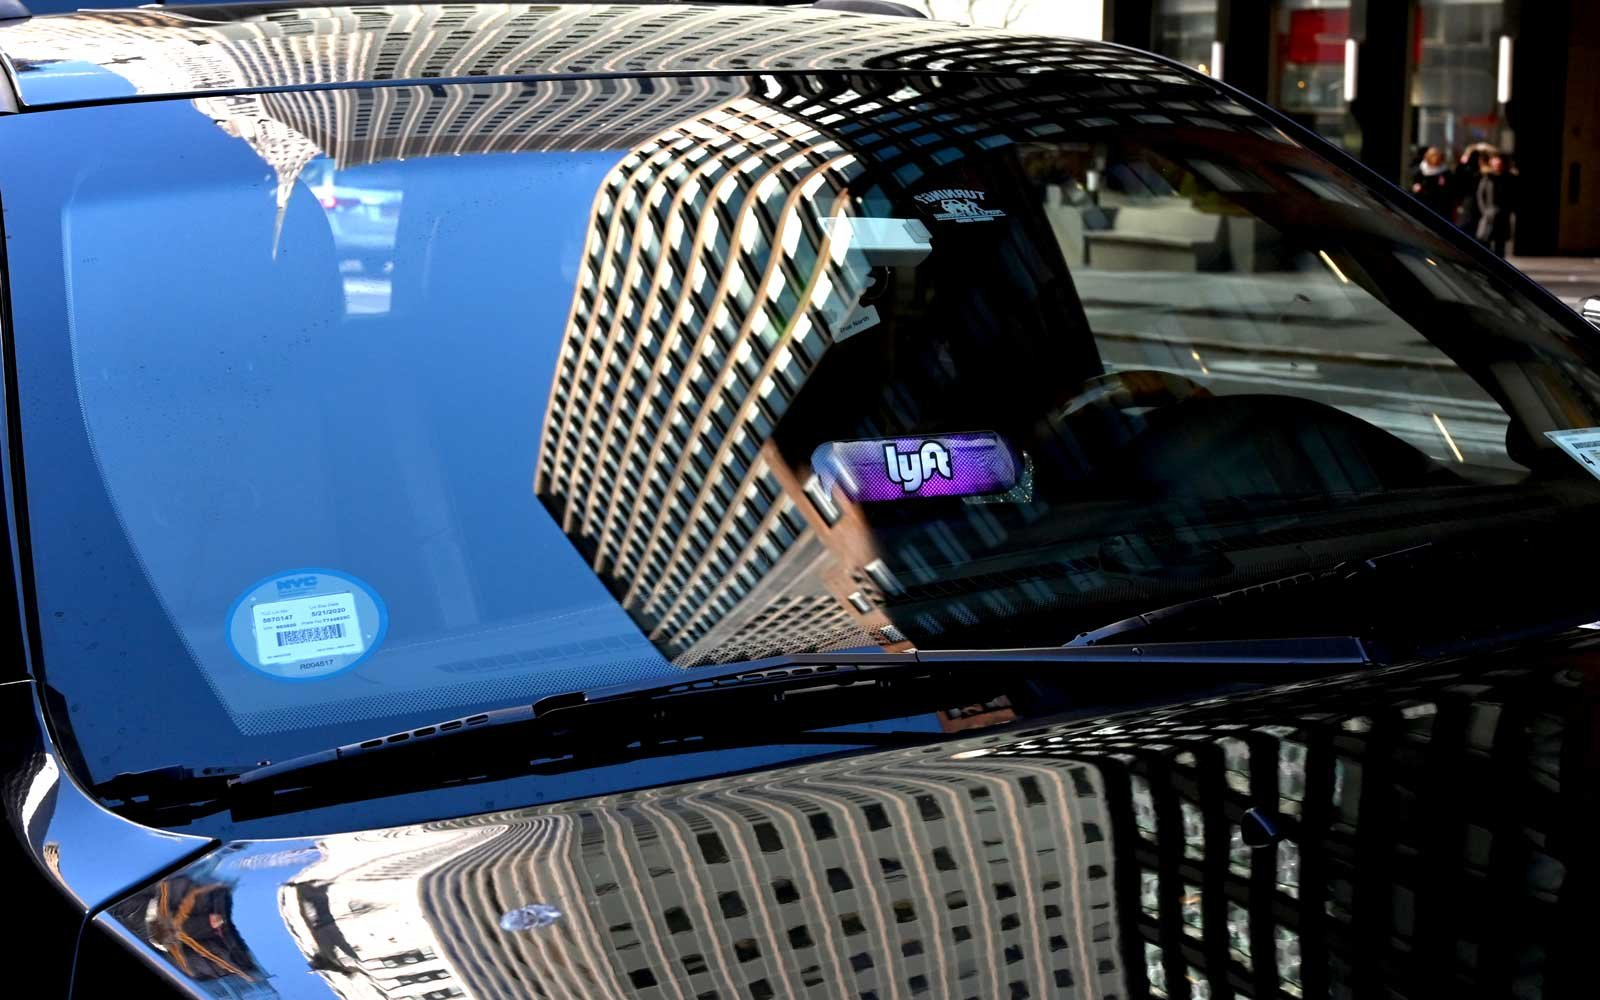 You can now earn Hilton Honors points every time you ride in a Lyft